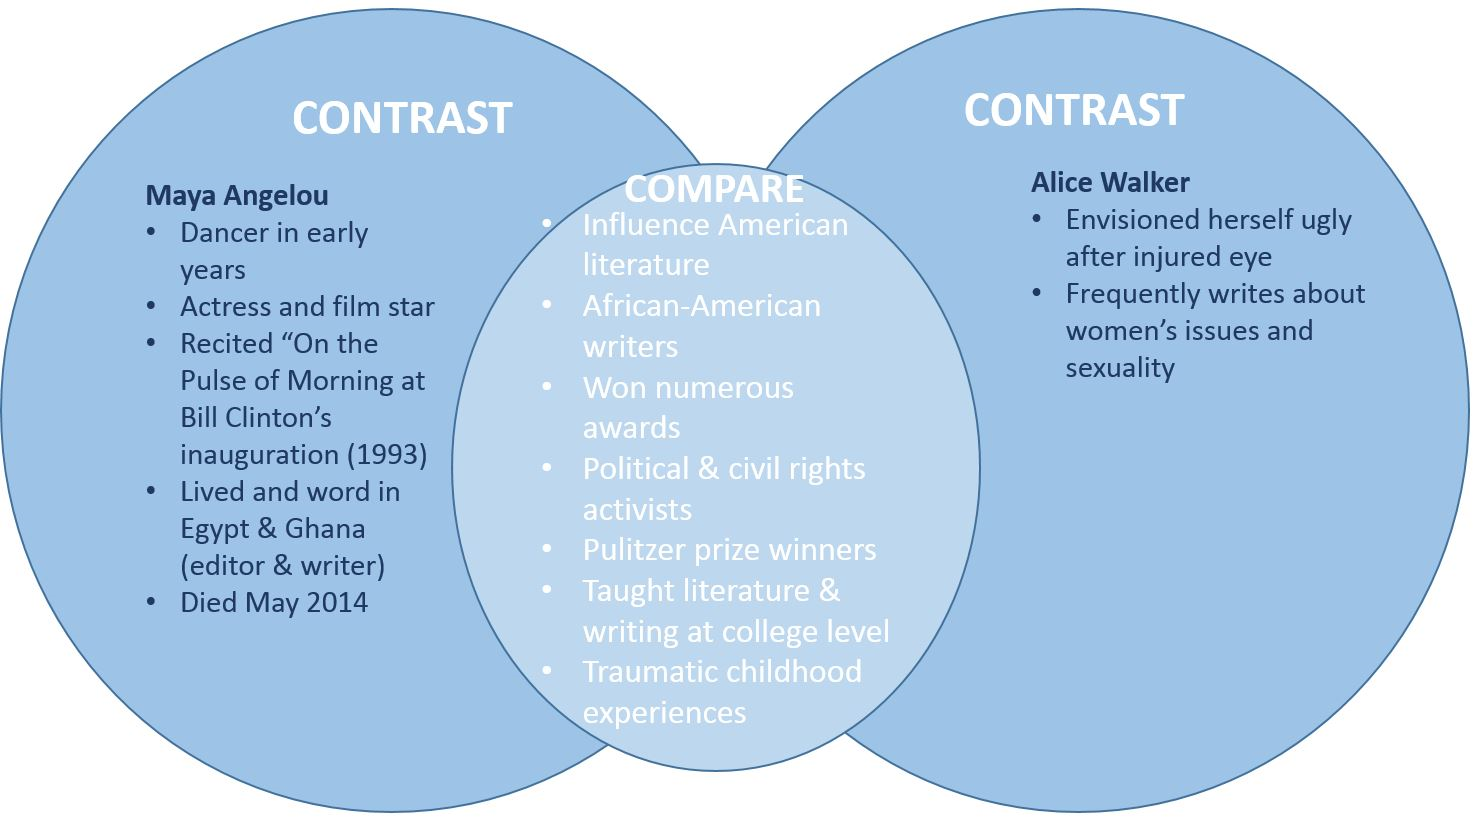 comparison and contrast essay examples college comparison contrast ...